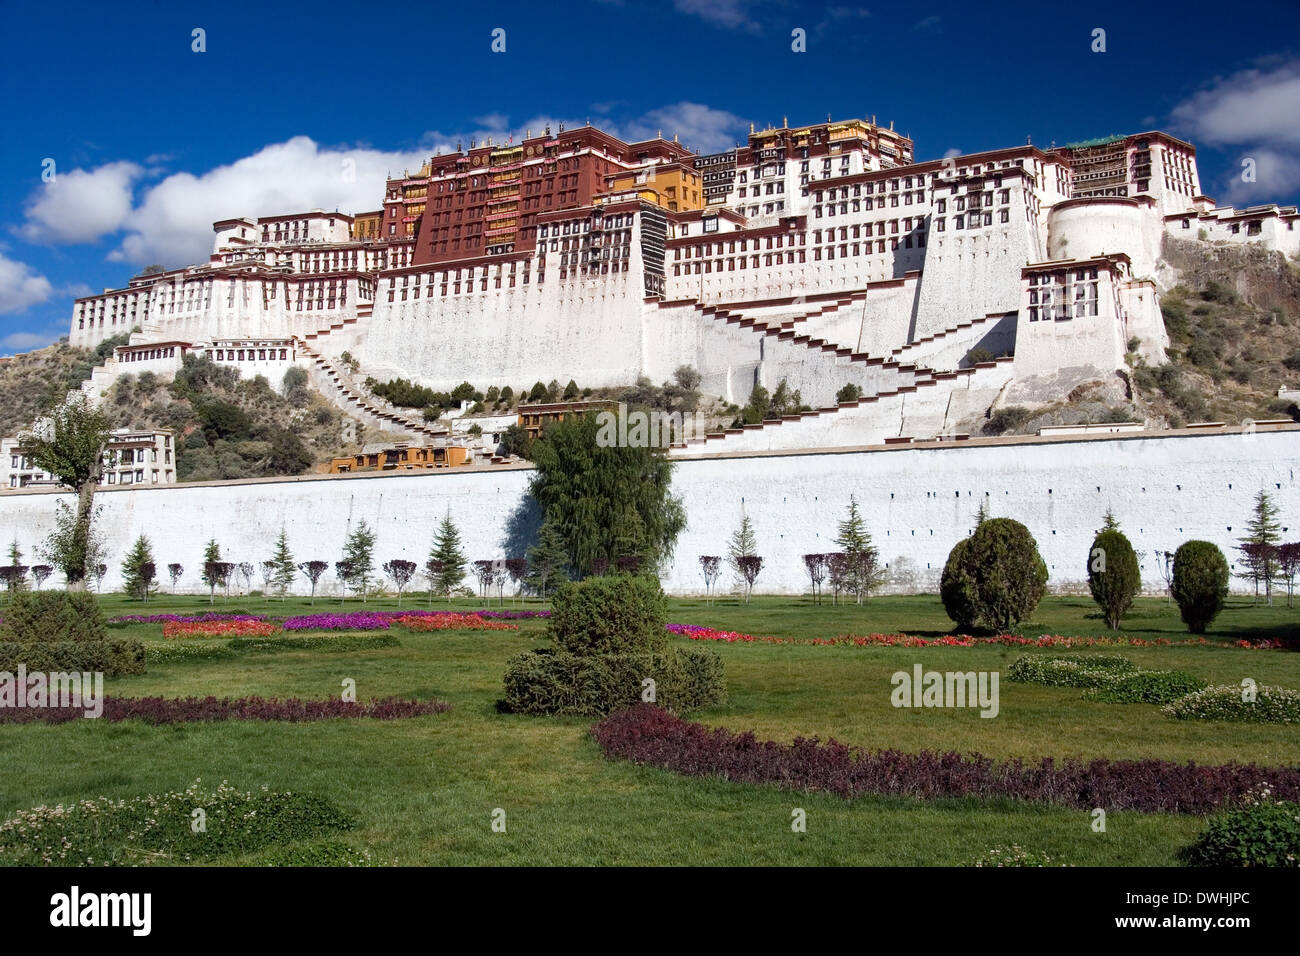 Potala Palace in the city of Lhasa in Tibet - Stock Image